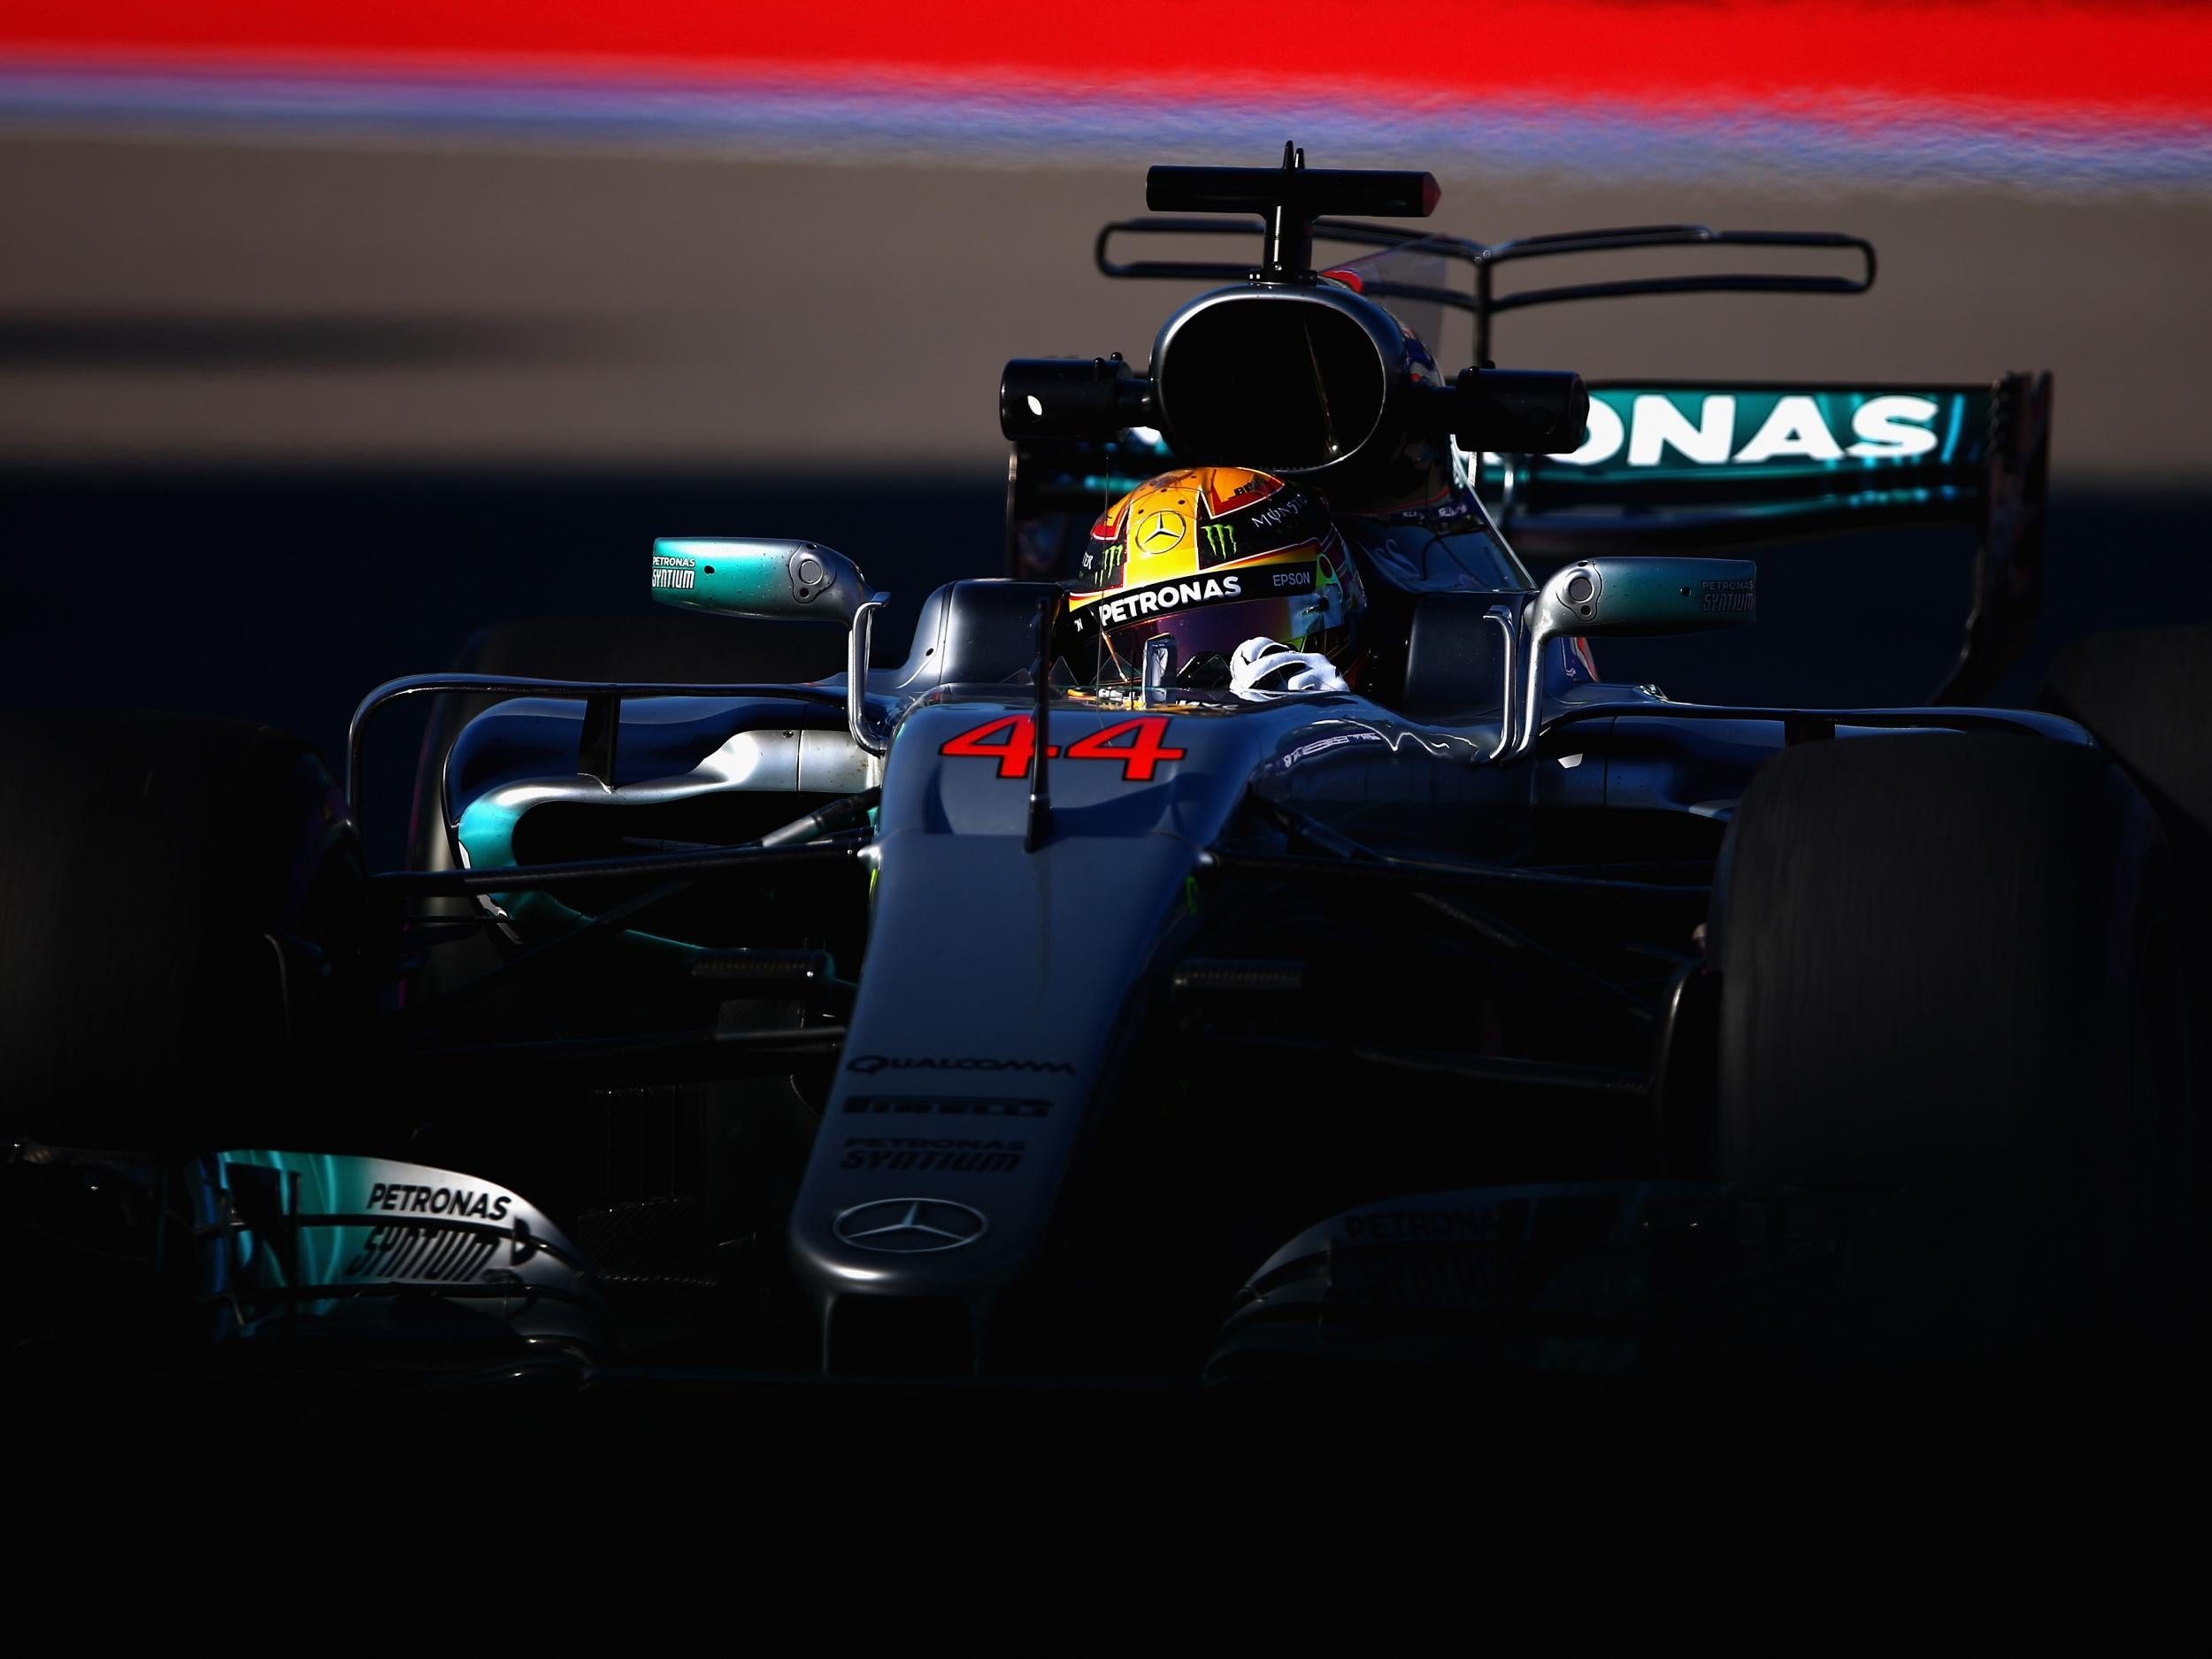 Mercedes braced for a weekend of damage limitation as Ferrari signal they could be difficult to stop in Russia